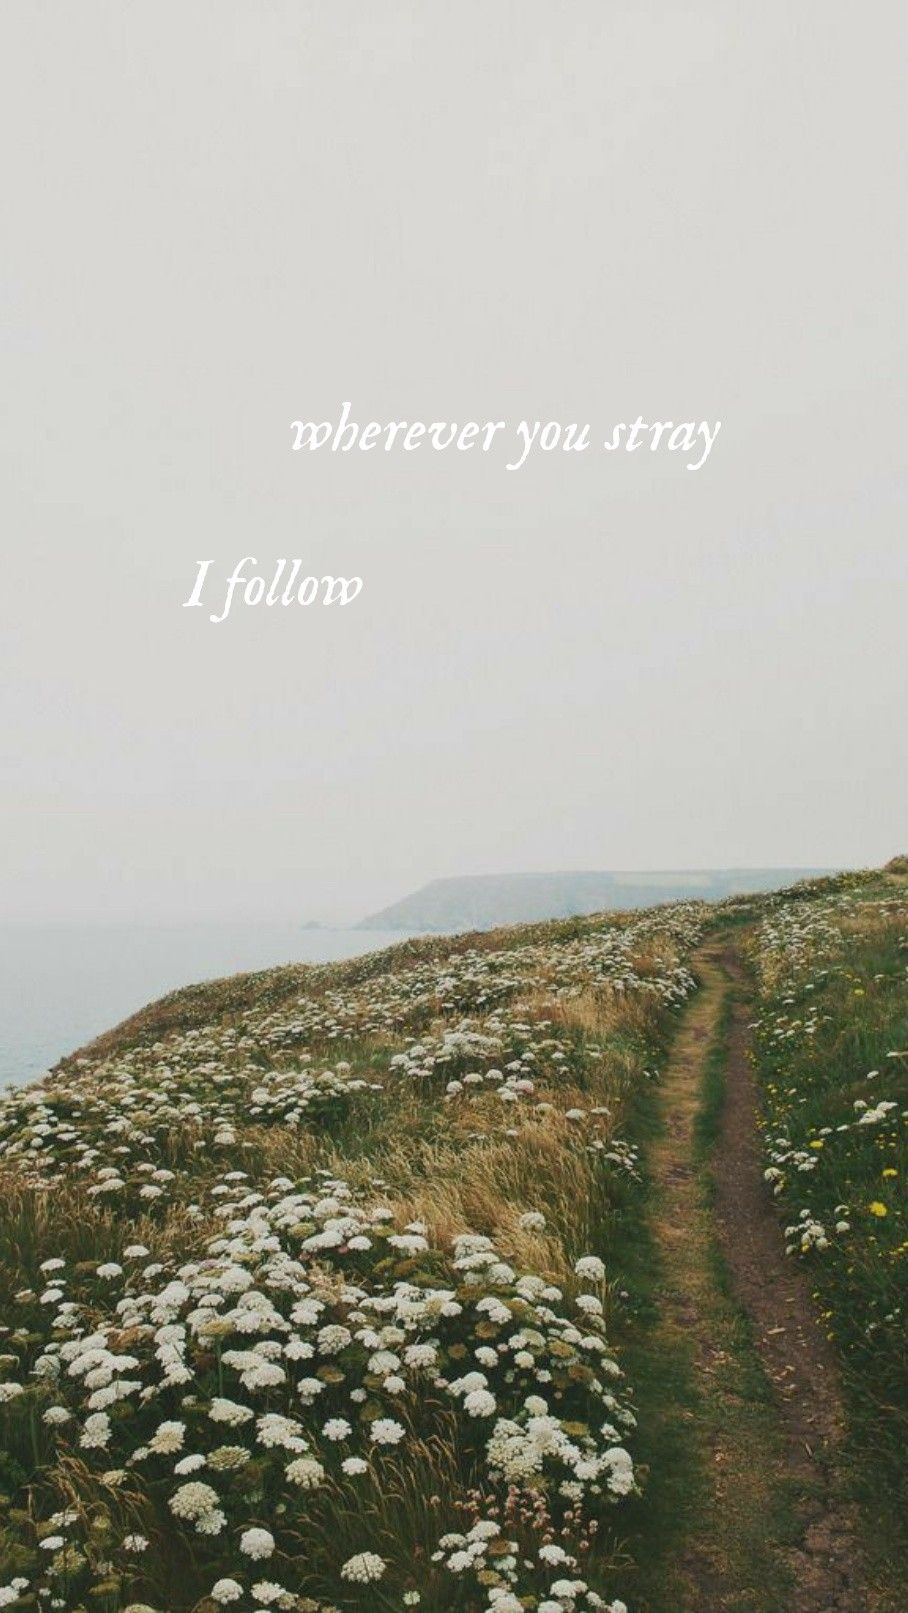 Evermore Wallpaper Background Willow Taylor Swift Lyrics Taylor Swift Quotes Taylor Lyrics